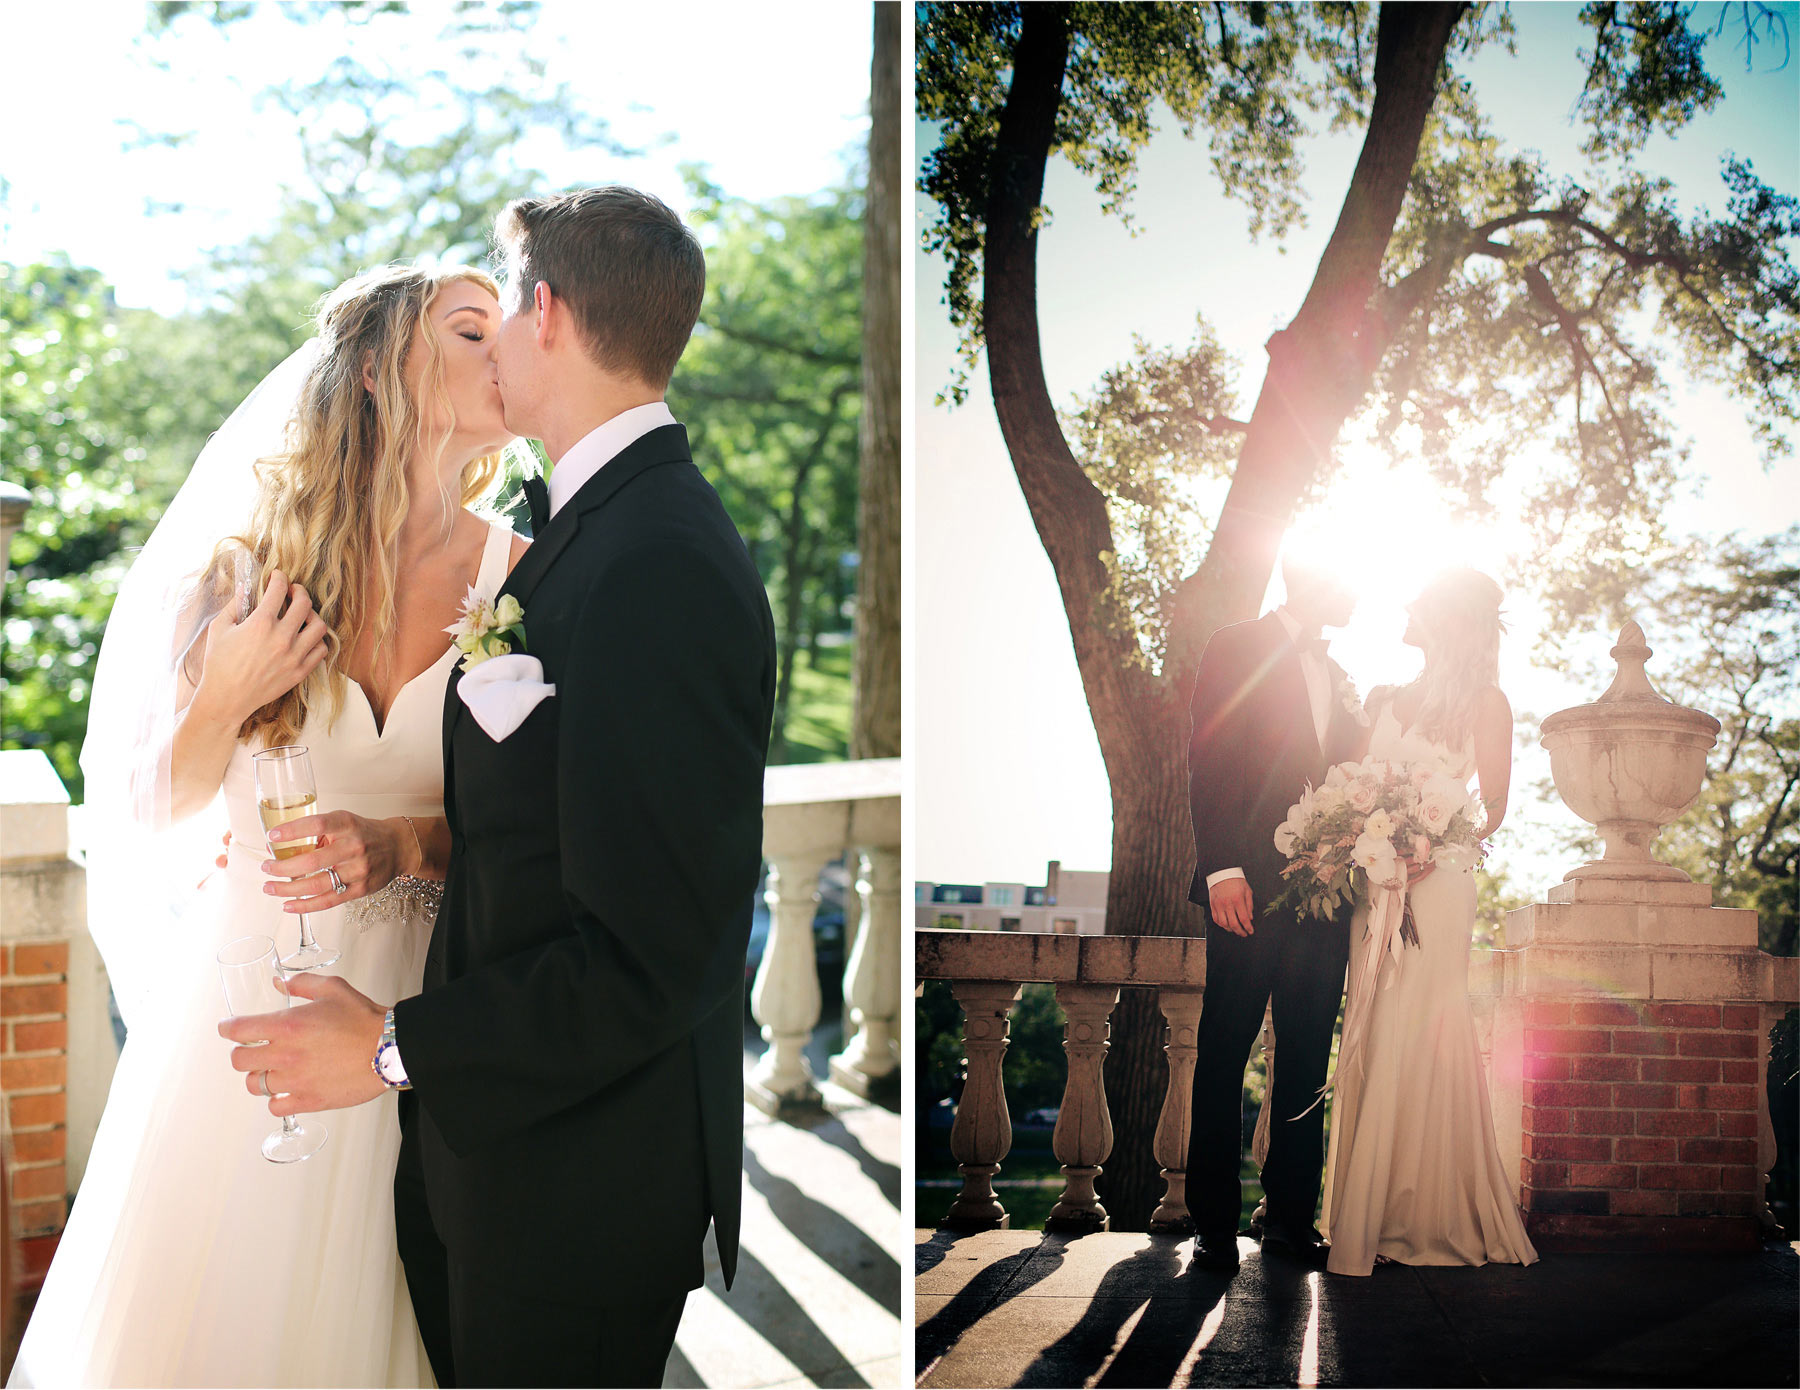 16-Minneapolis-Minnesota-Wedding-Photographer-by-Andrew-Vick-Photography-Summer-Calhoun-Beach-Club-Bride-Groom-Kiss-Champagne-Sunburst-Lexie-and-James.jpg